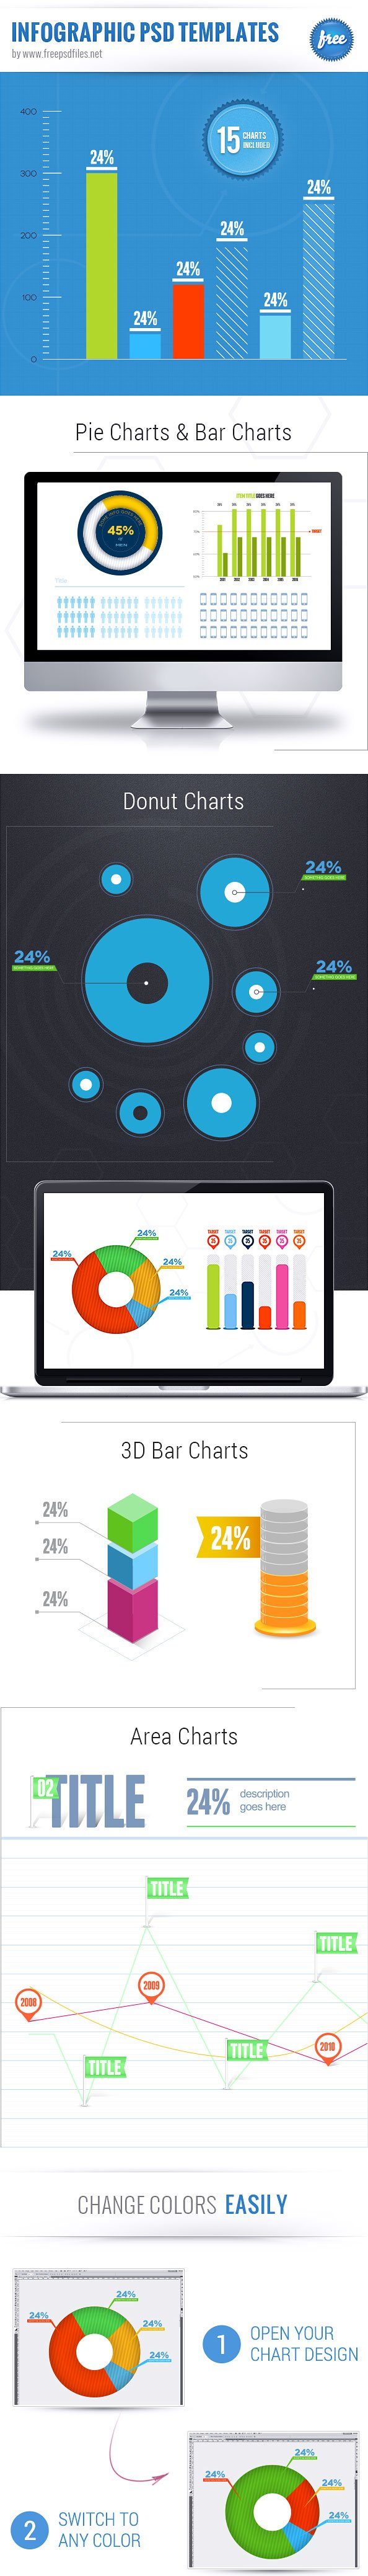 Free Infographic PSD Templates PSD files, vectors & graphics ...